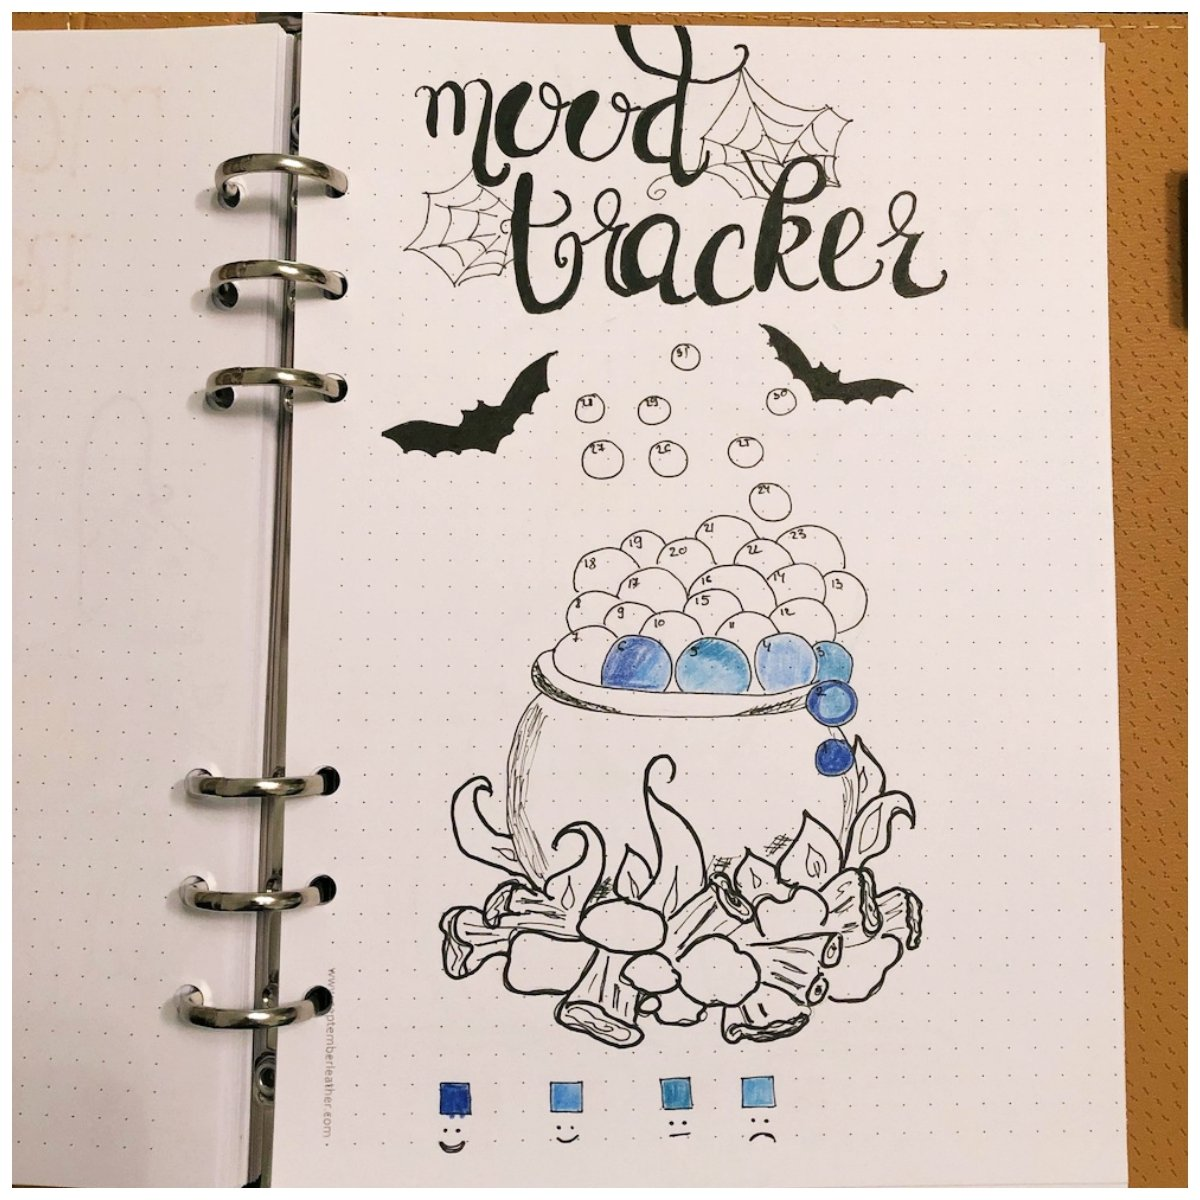 Boiling Mood Tracker for your Bullet Journal - itstartswithacoffee.com #bulletjournal #bujo #tracker #moodtracker